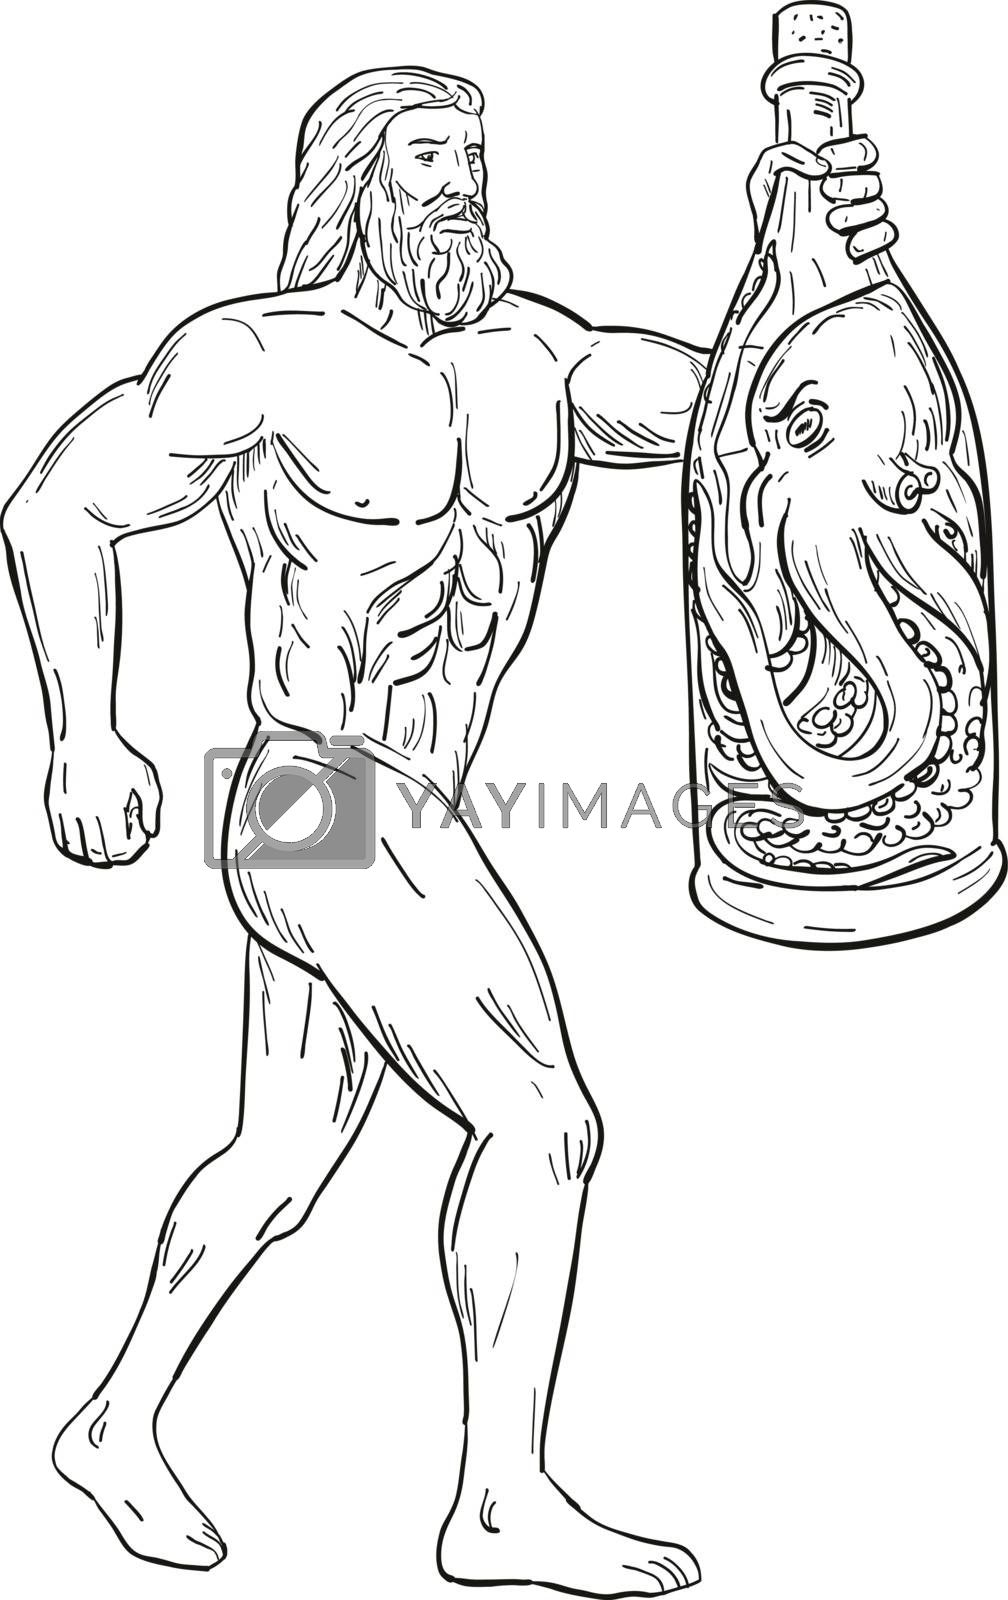 Hercules With Bottled Up Angry Octopus Drawing Black and White by patrimonio